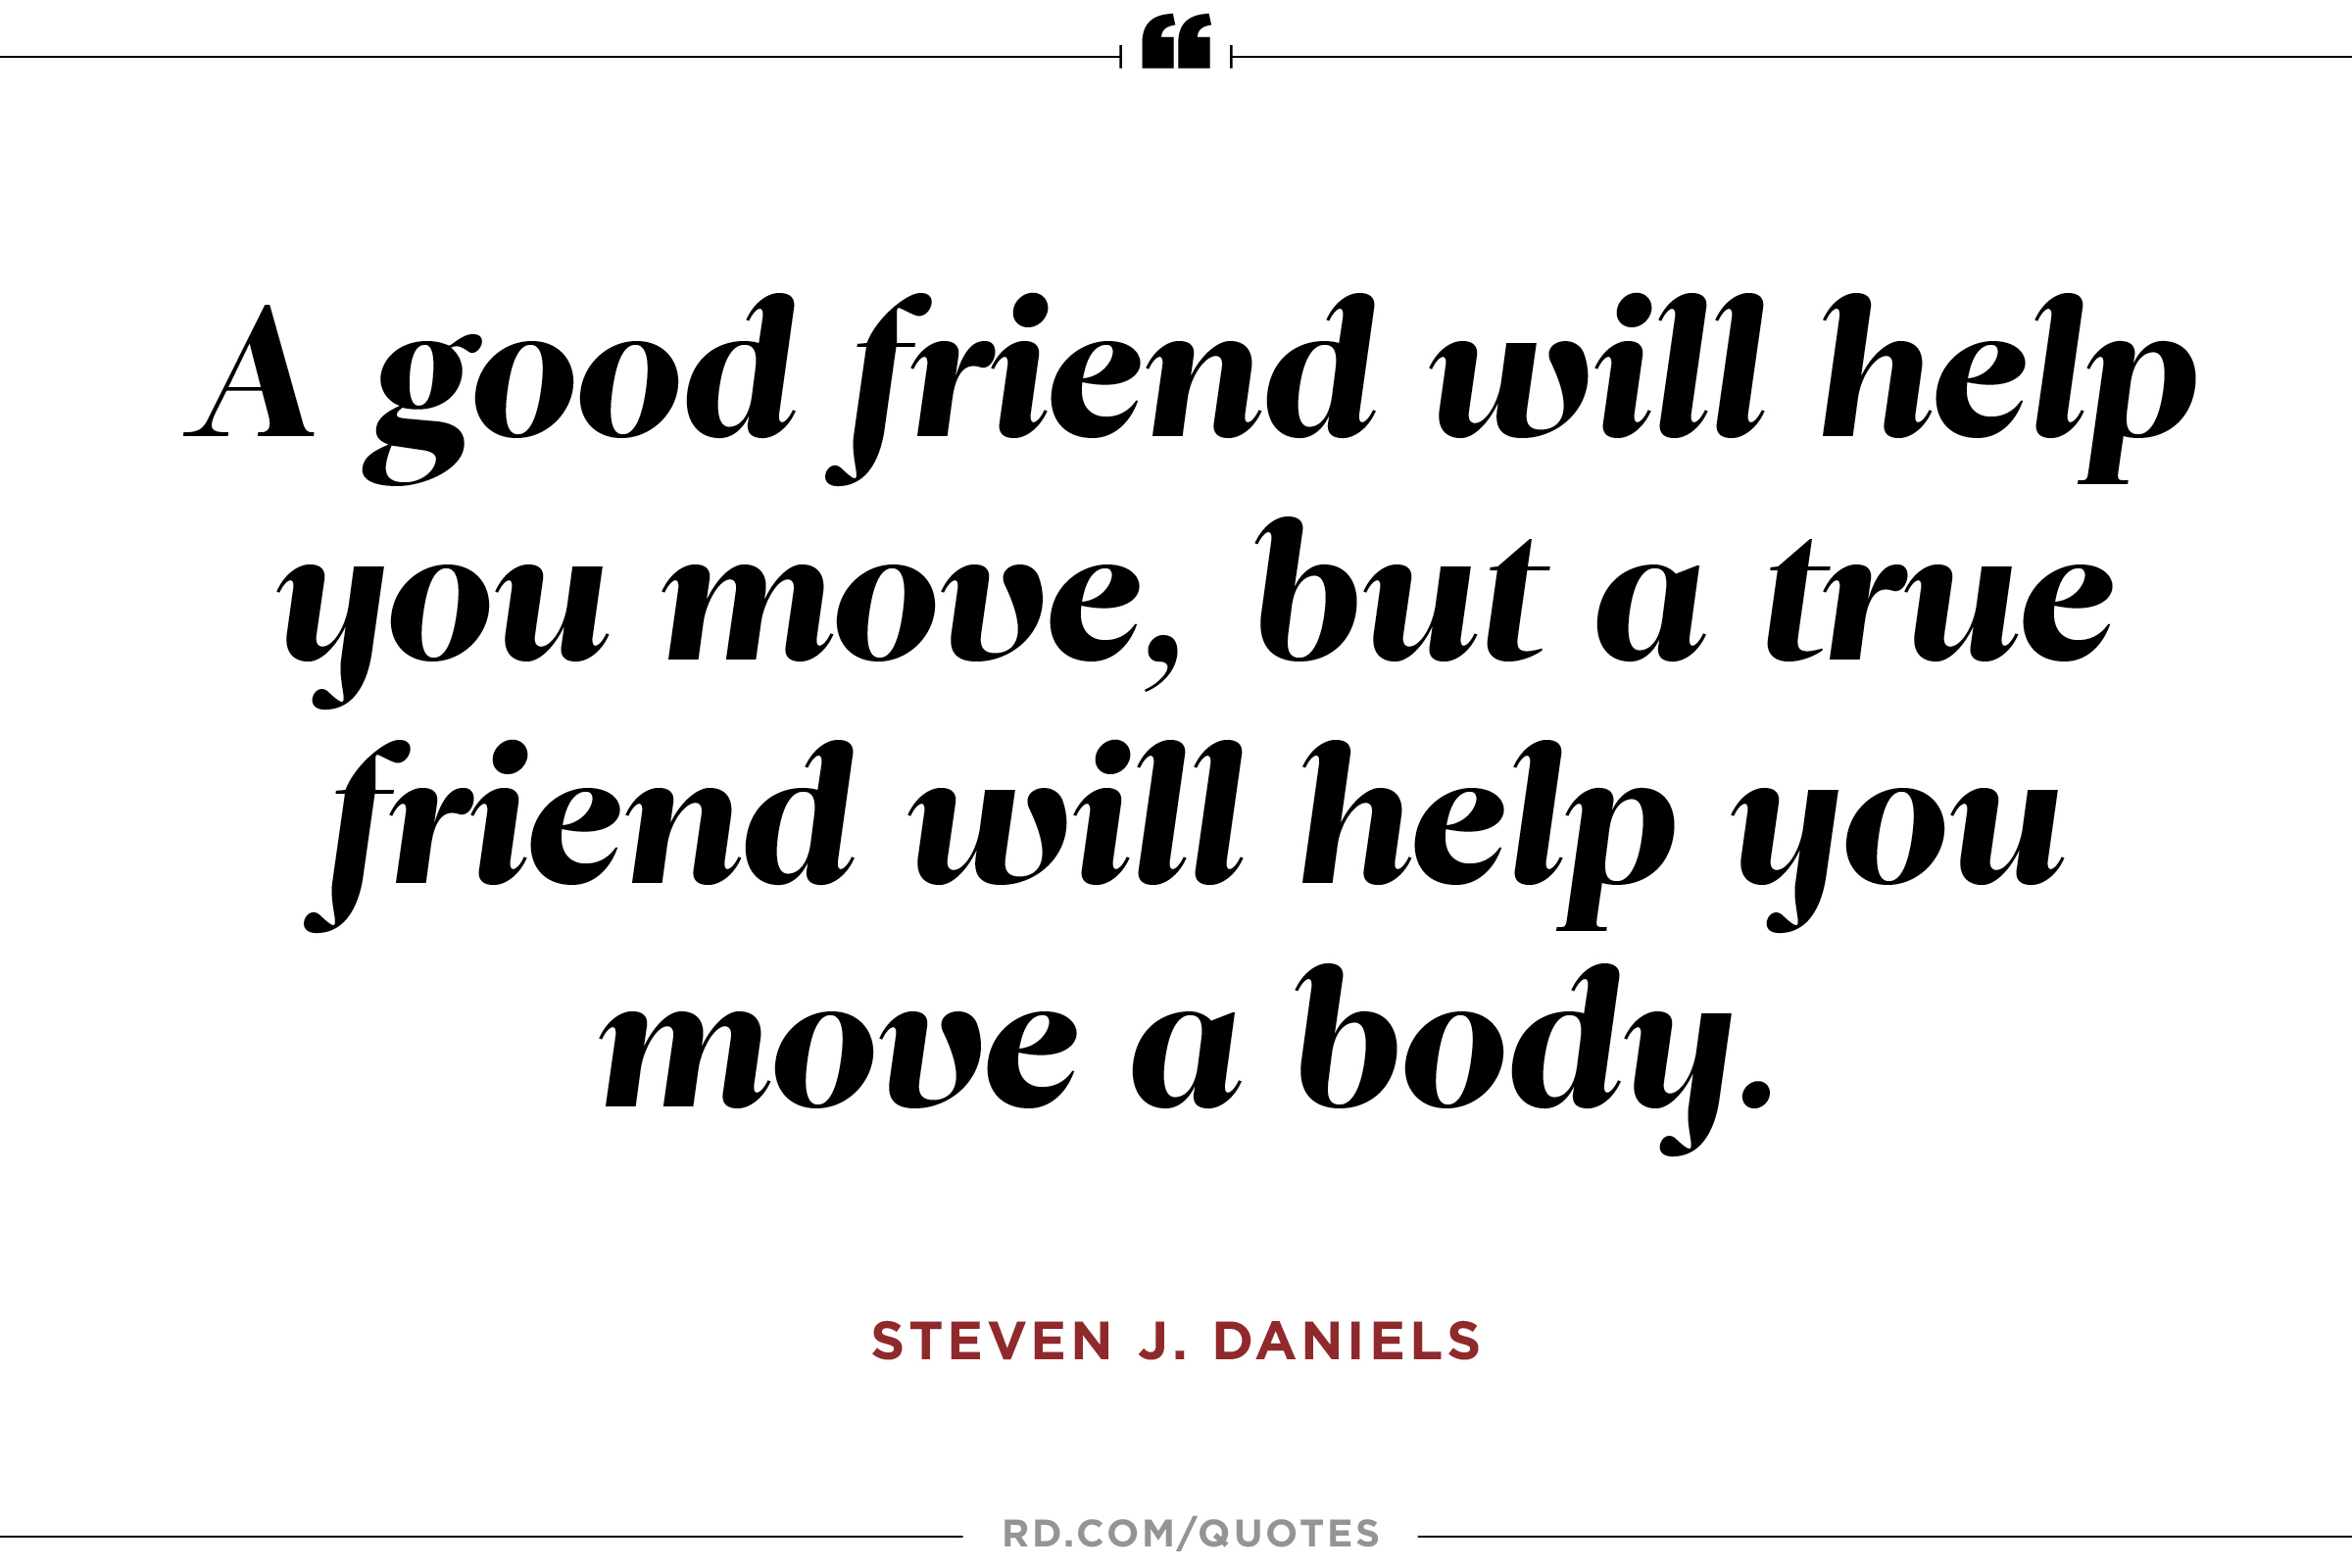 A good friend will help you move, but a true friend will help you move a body. Steven J. Daniels